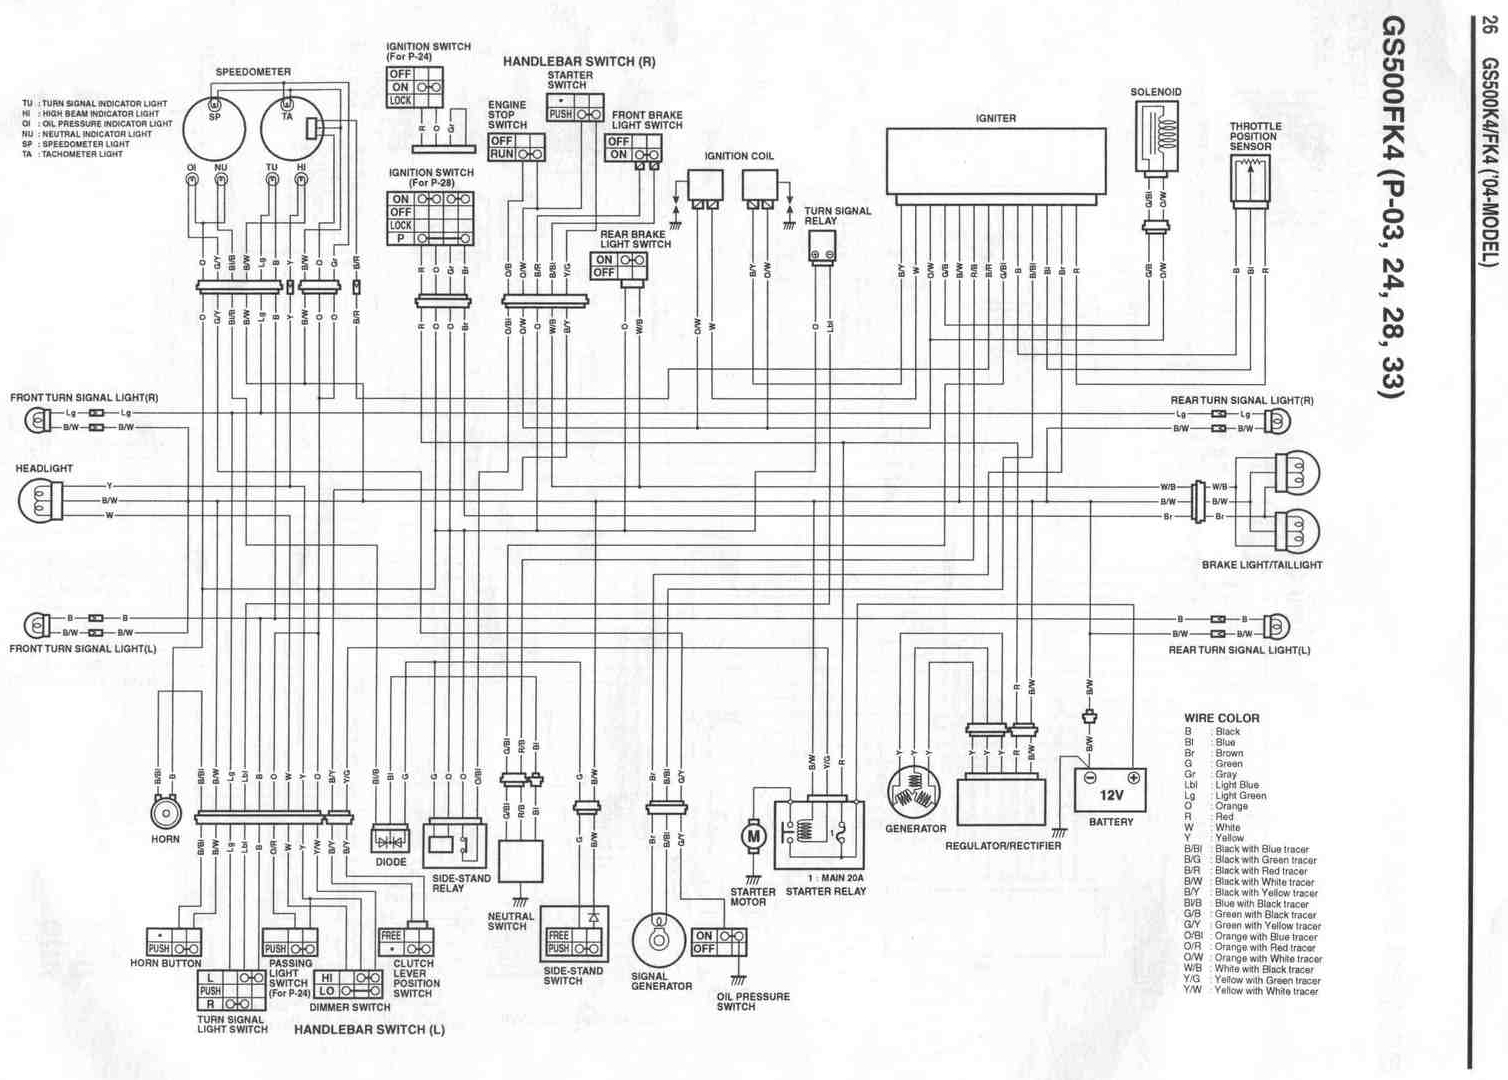 Suzuki_WiringDiagram_04 what are these wiring diagrams? wb wiring diagram at reclaimingppi.co